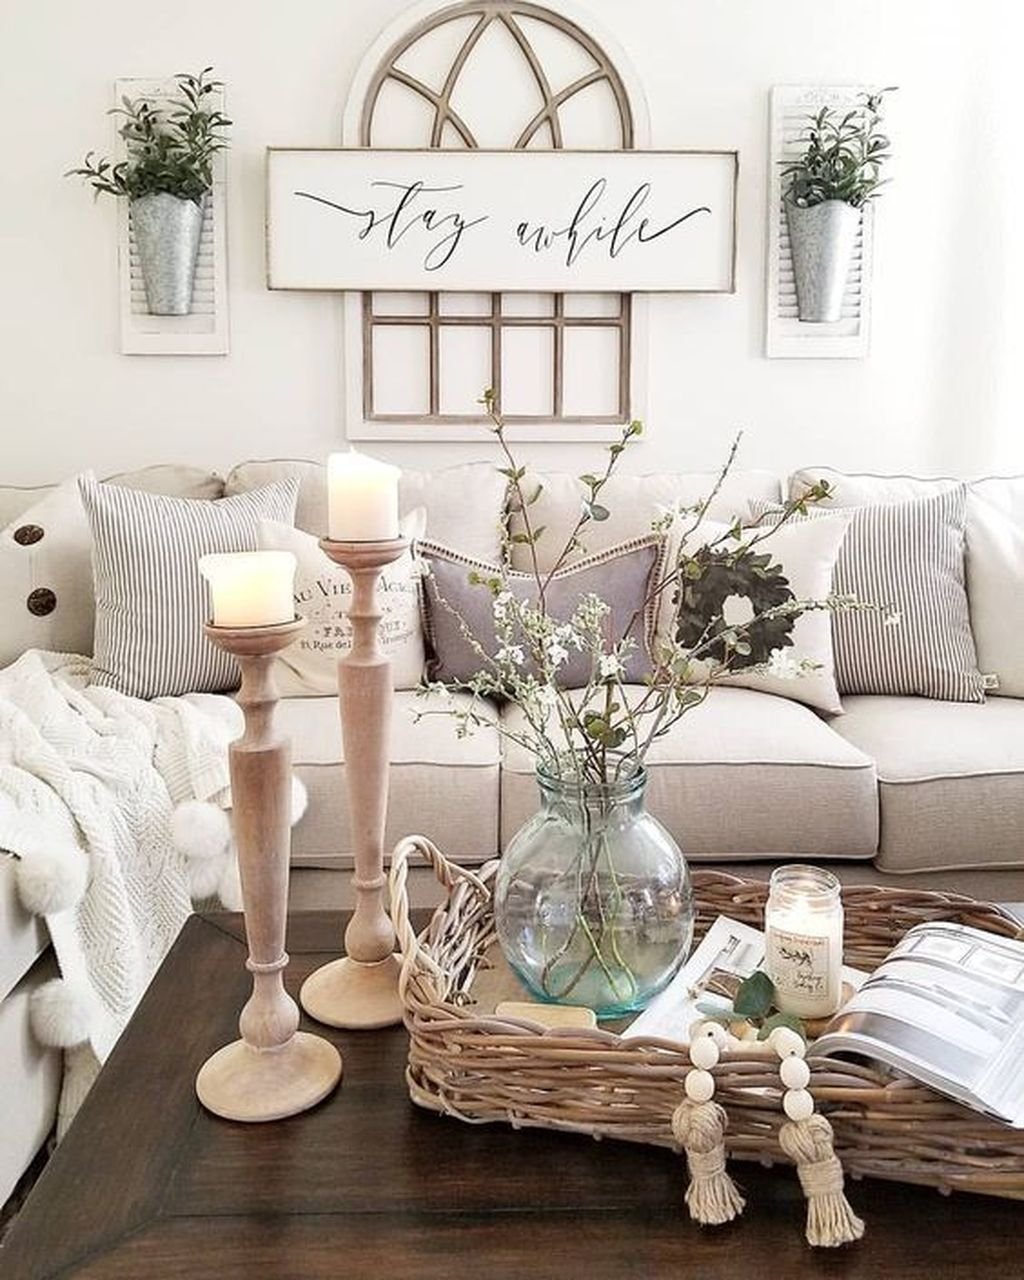 Pin By Michele Nguyen On The Cottage Farmhouse Decor Living Room Farm House Living Room Rustic Farmhouse Living Room